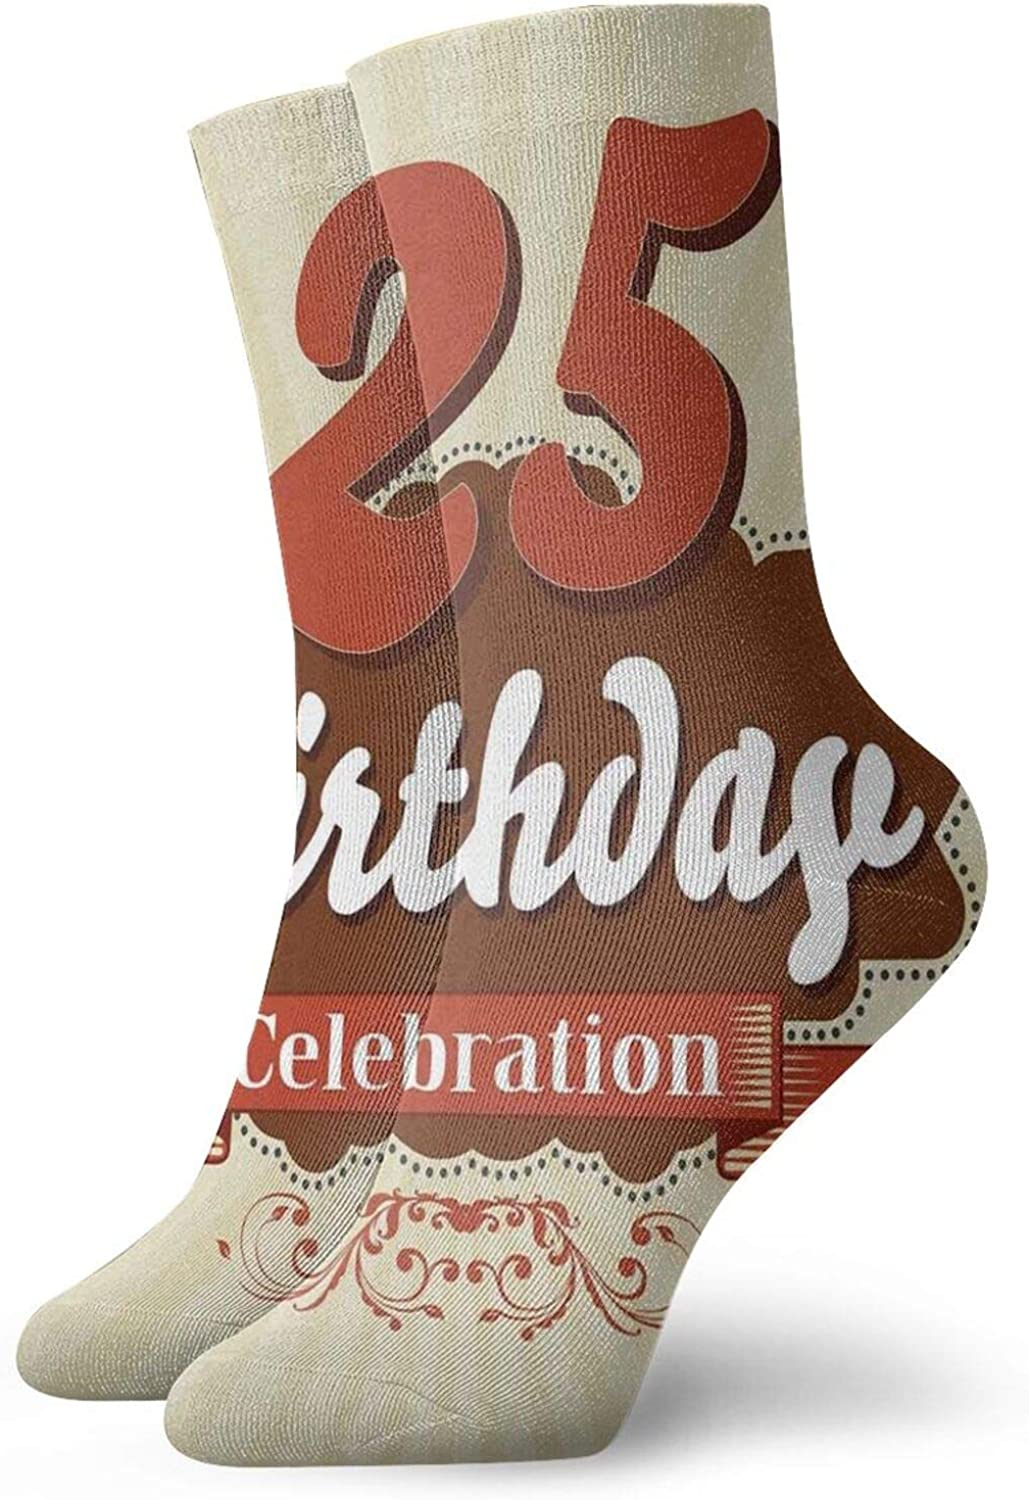 Compression High Socks-Aged Design Typography 25th Retro Style Fashionable Retro Print Best for Running,Athletic,Hiking,Travel,Flight